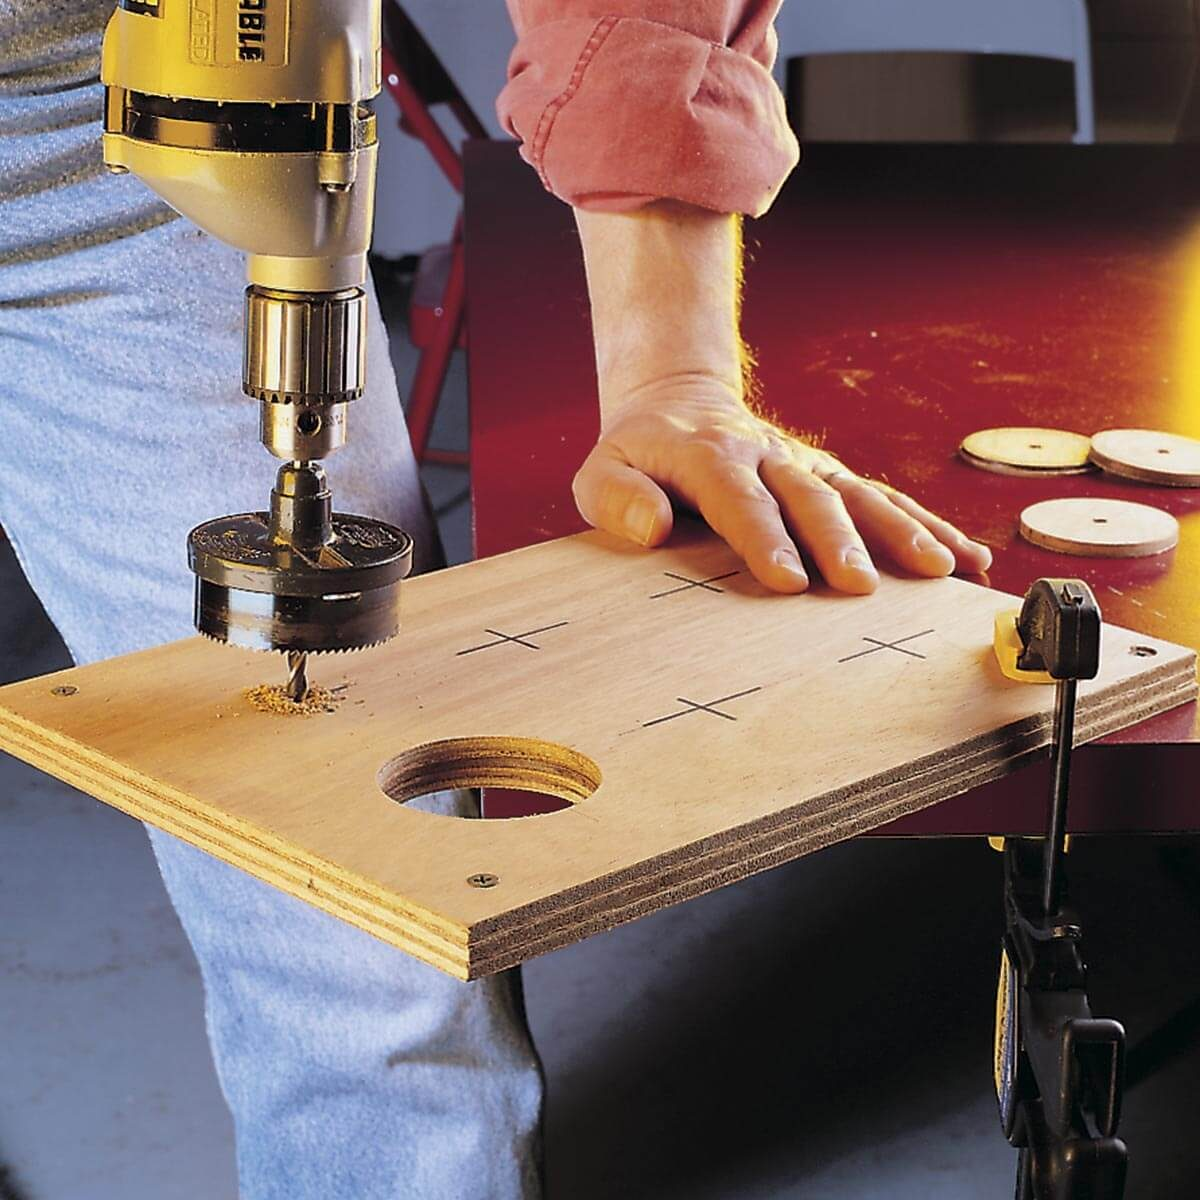 Cutting holes in plywood